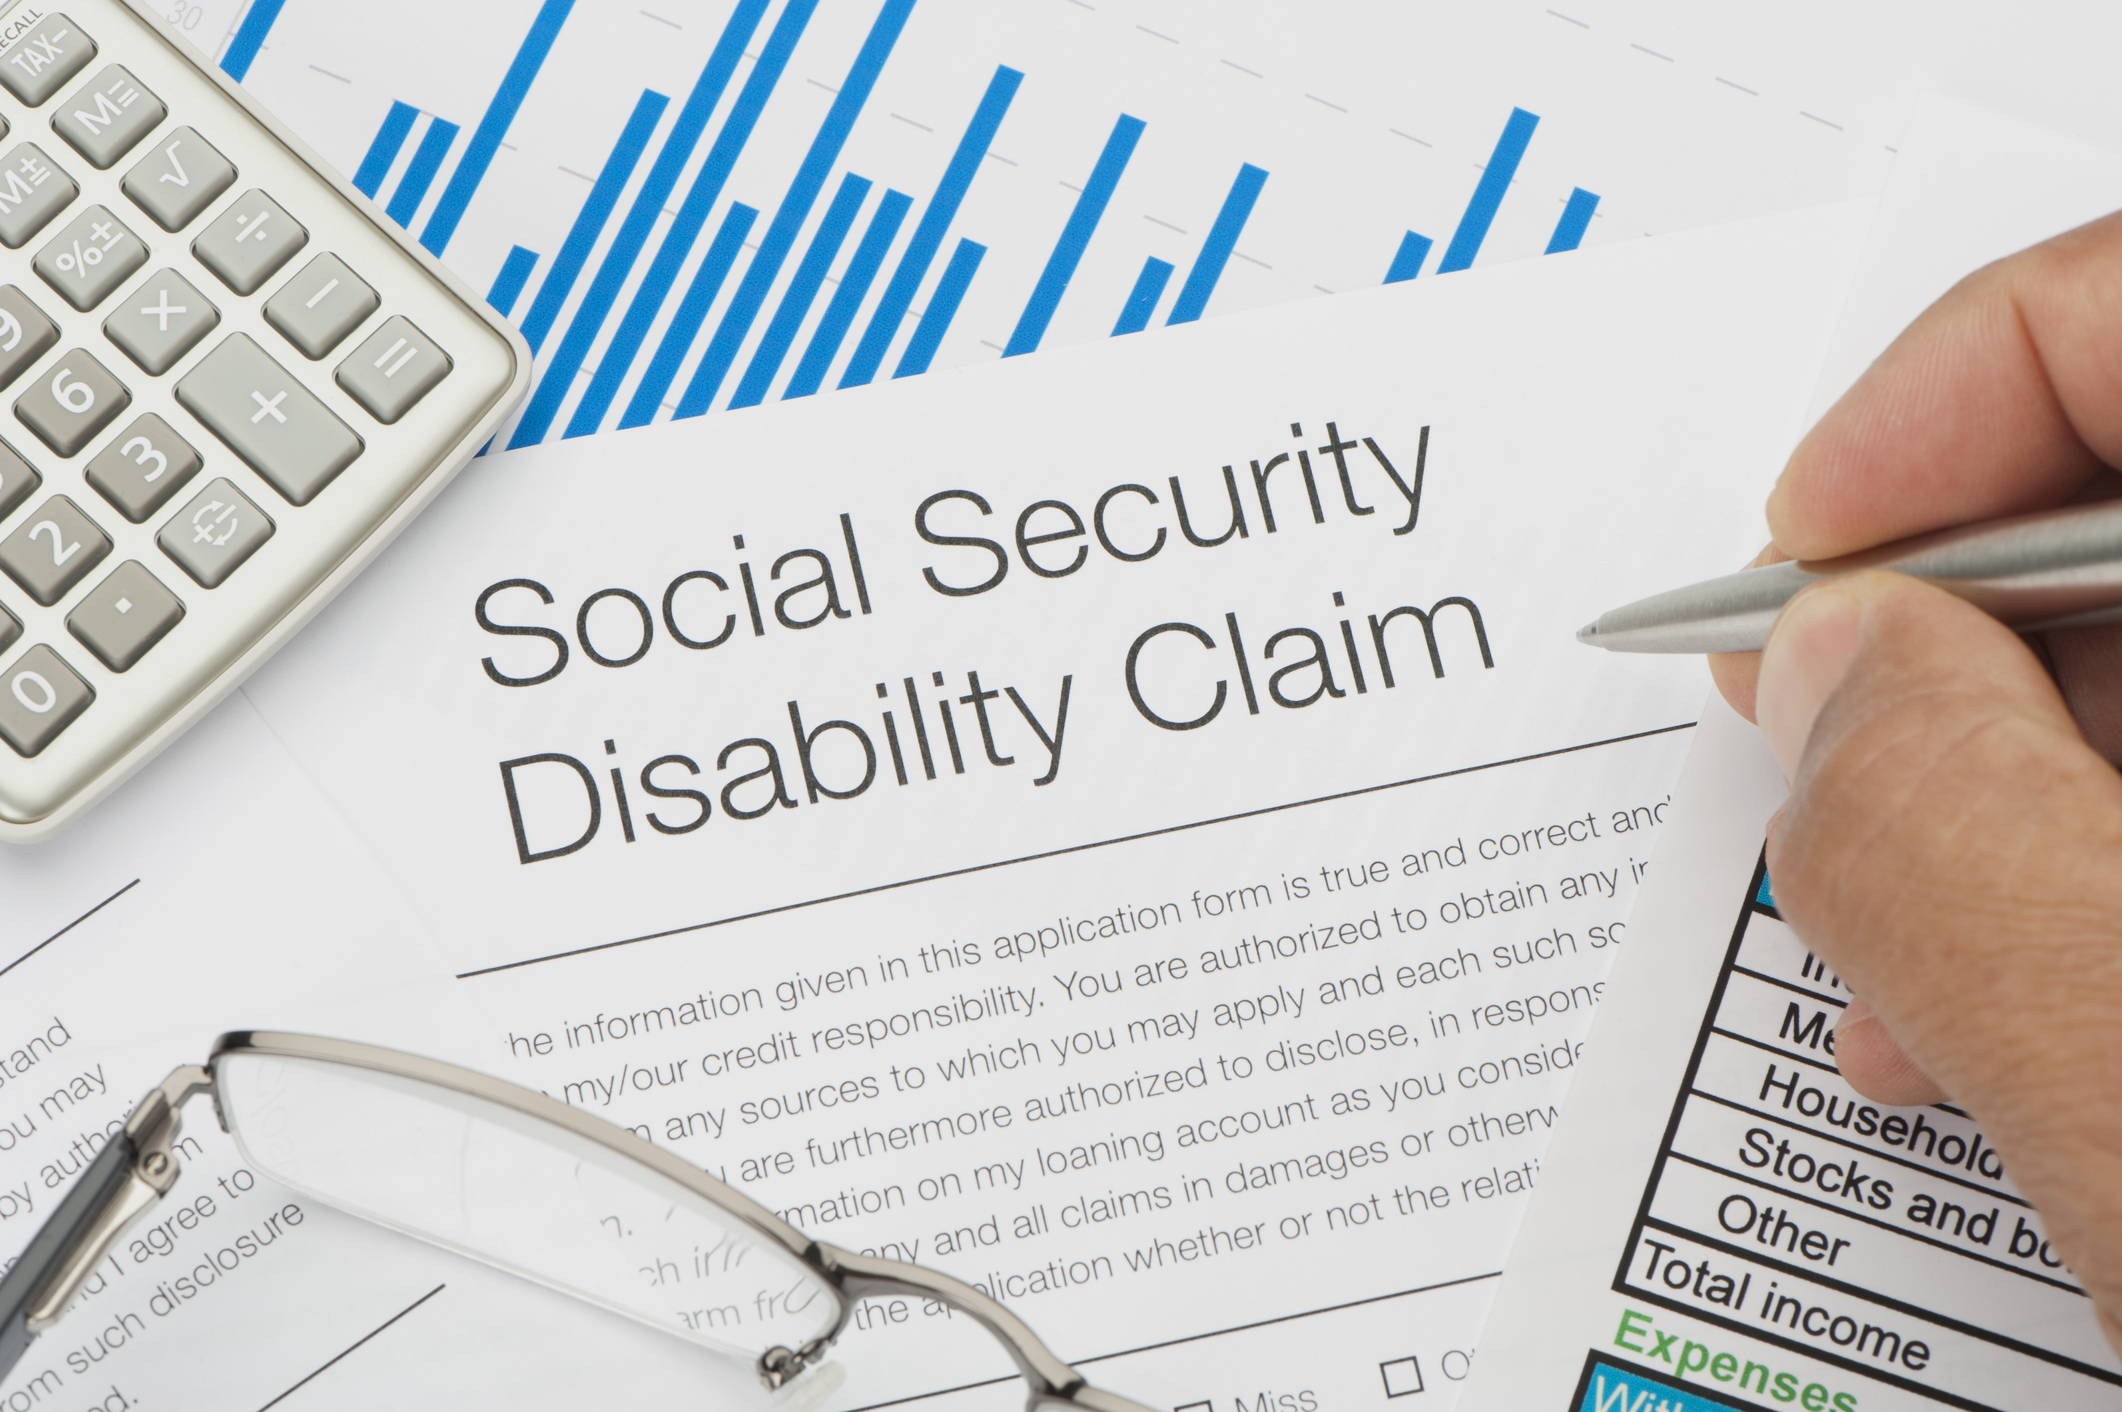 Reconsideration Review impacts Social Security disability claims